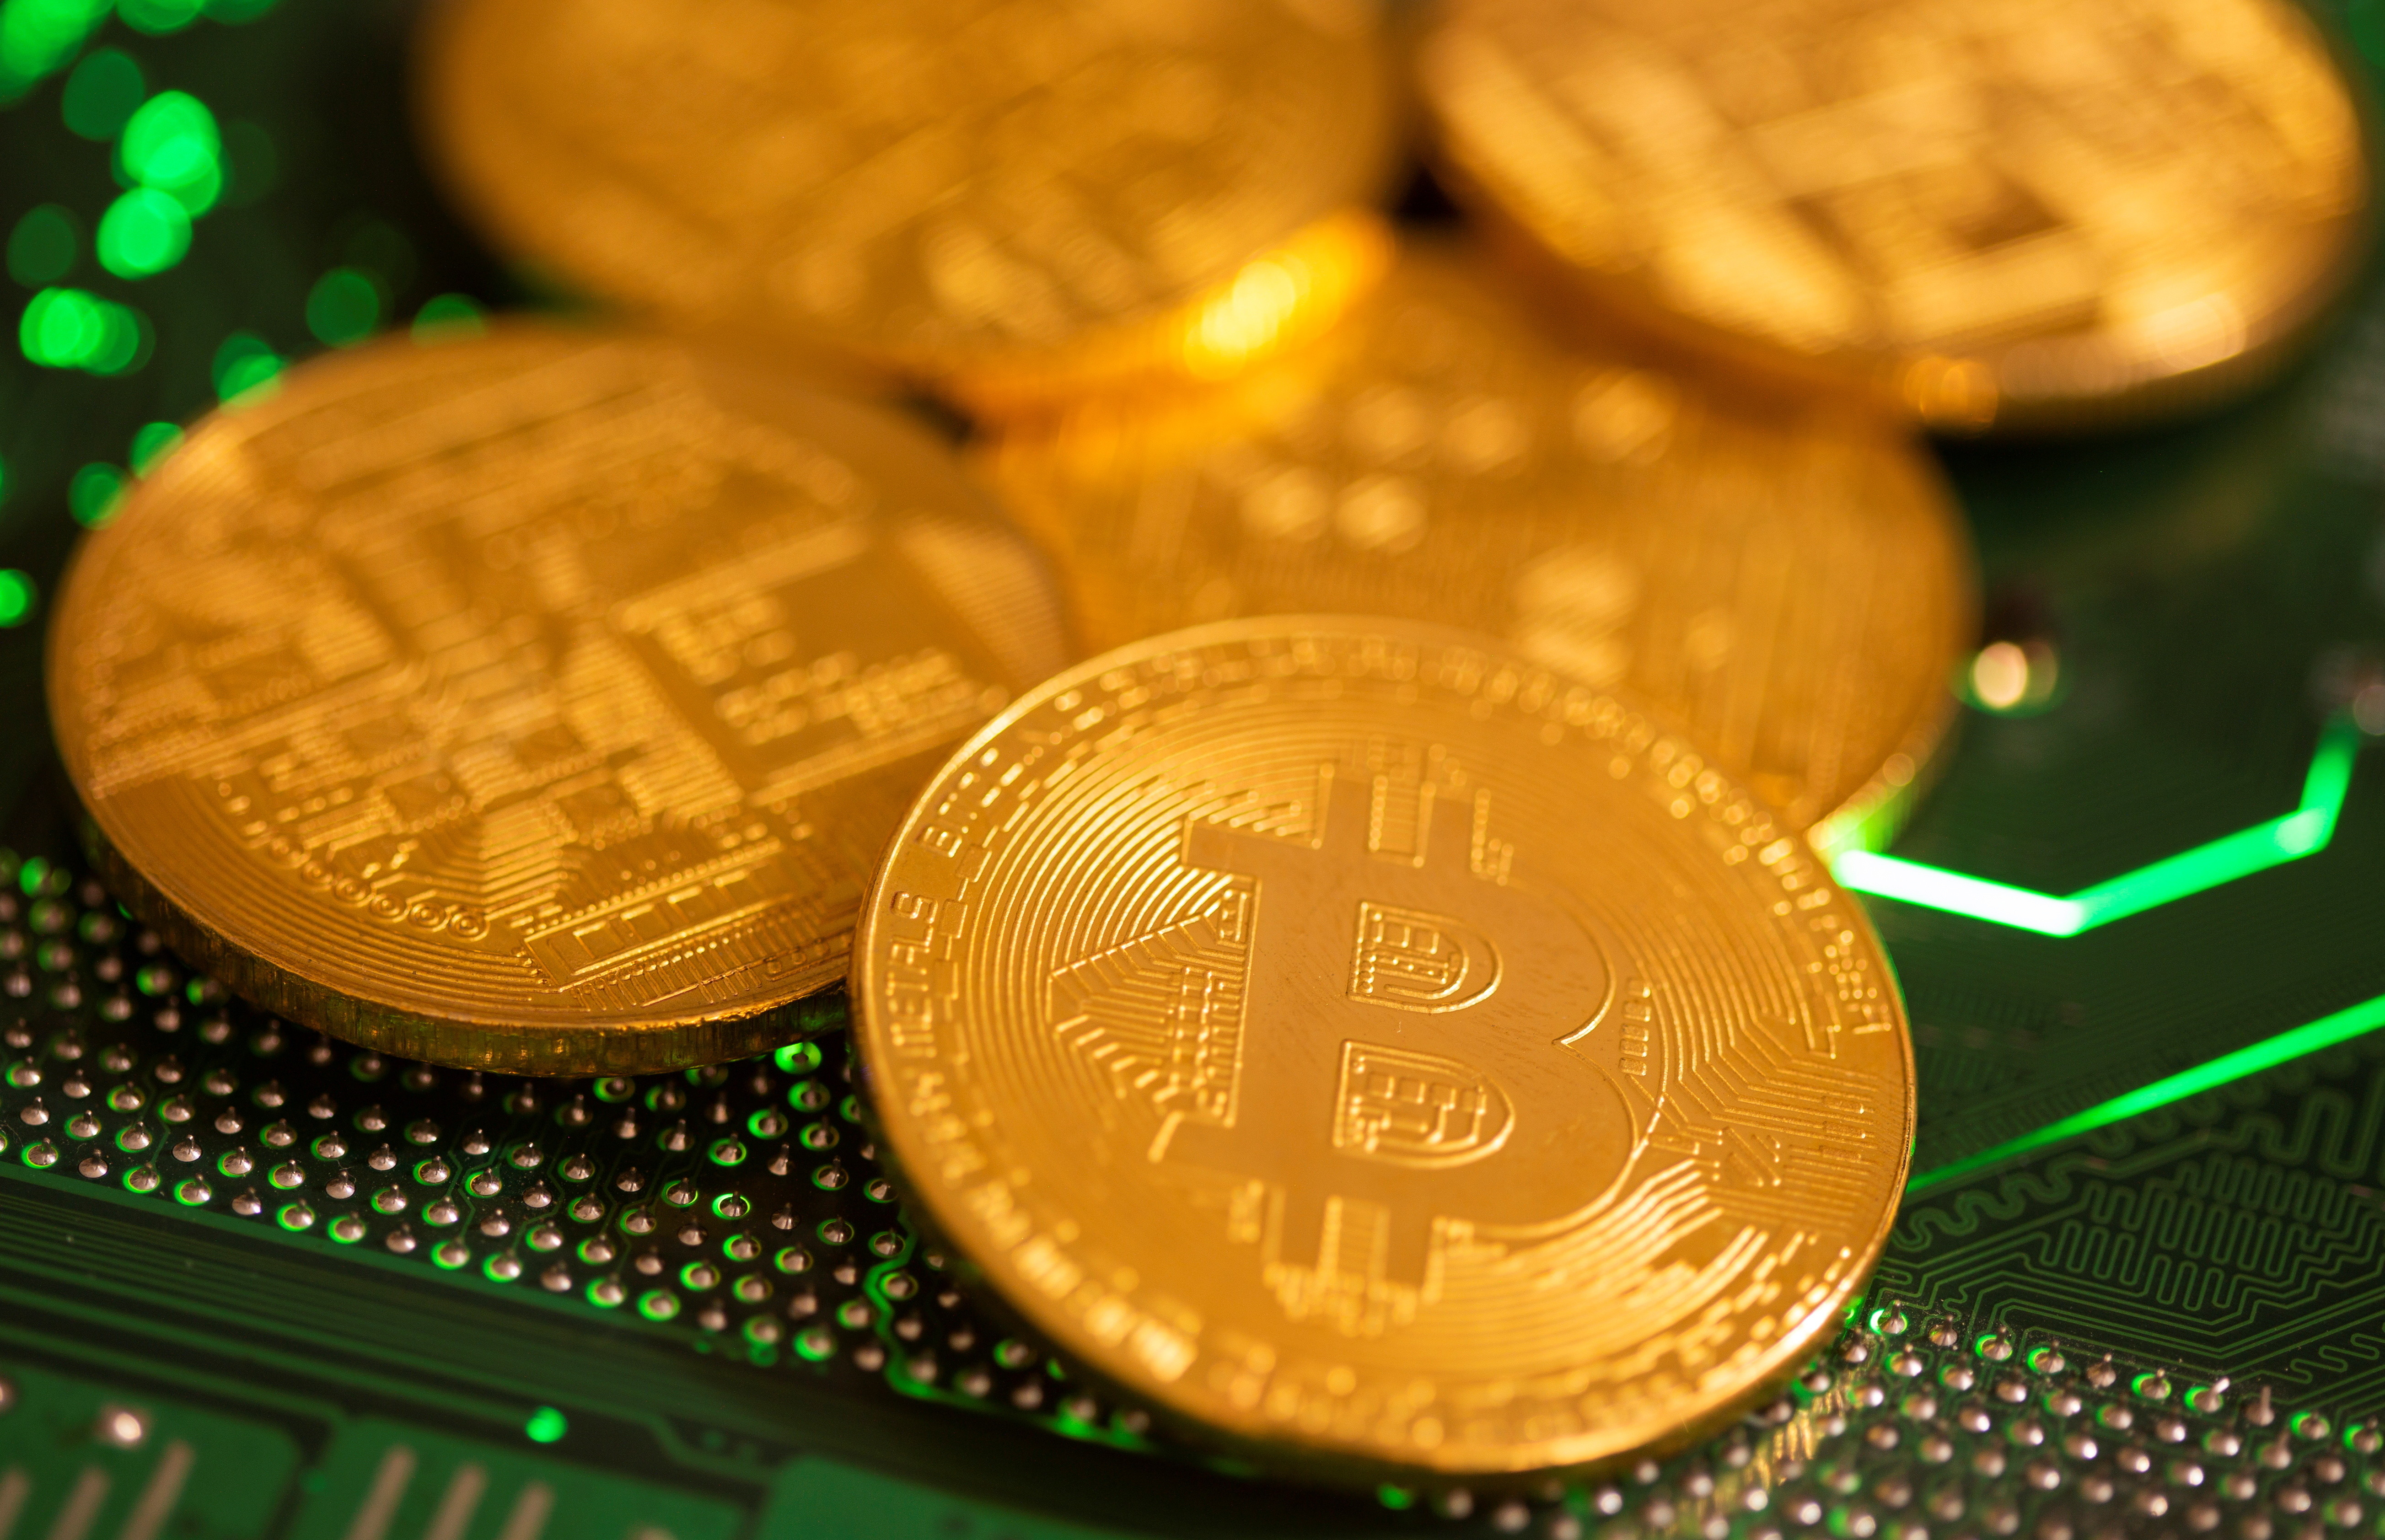 Representations of virtual currency Bitcoin are placed on a computer motherboard in this illustration taken January 21, 2021. REUTERS/Dado Ruvic/Illustration - RC2MCL97GFOK